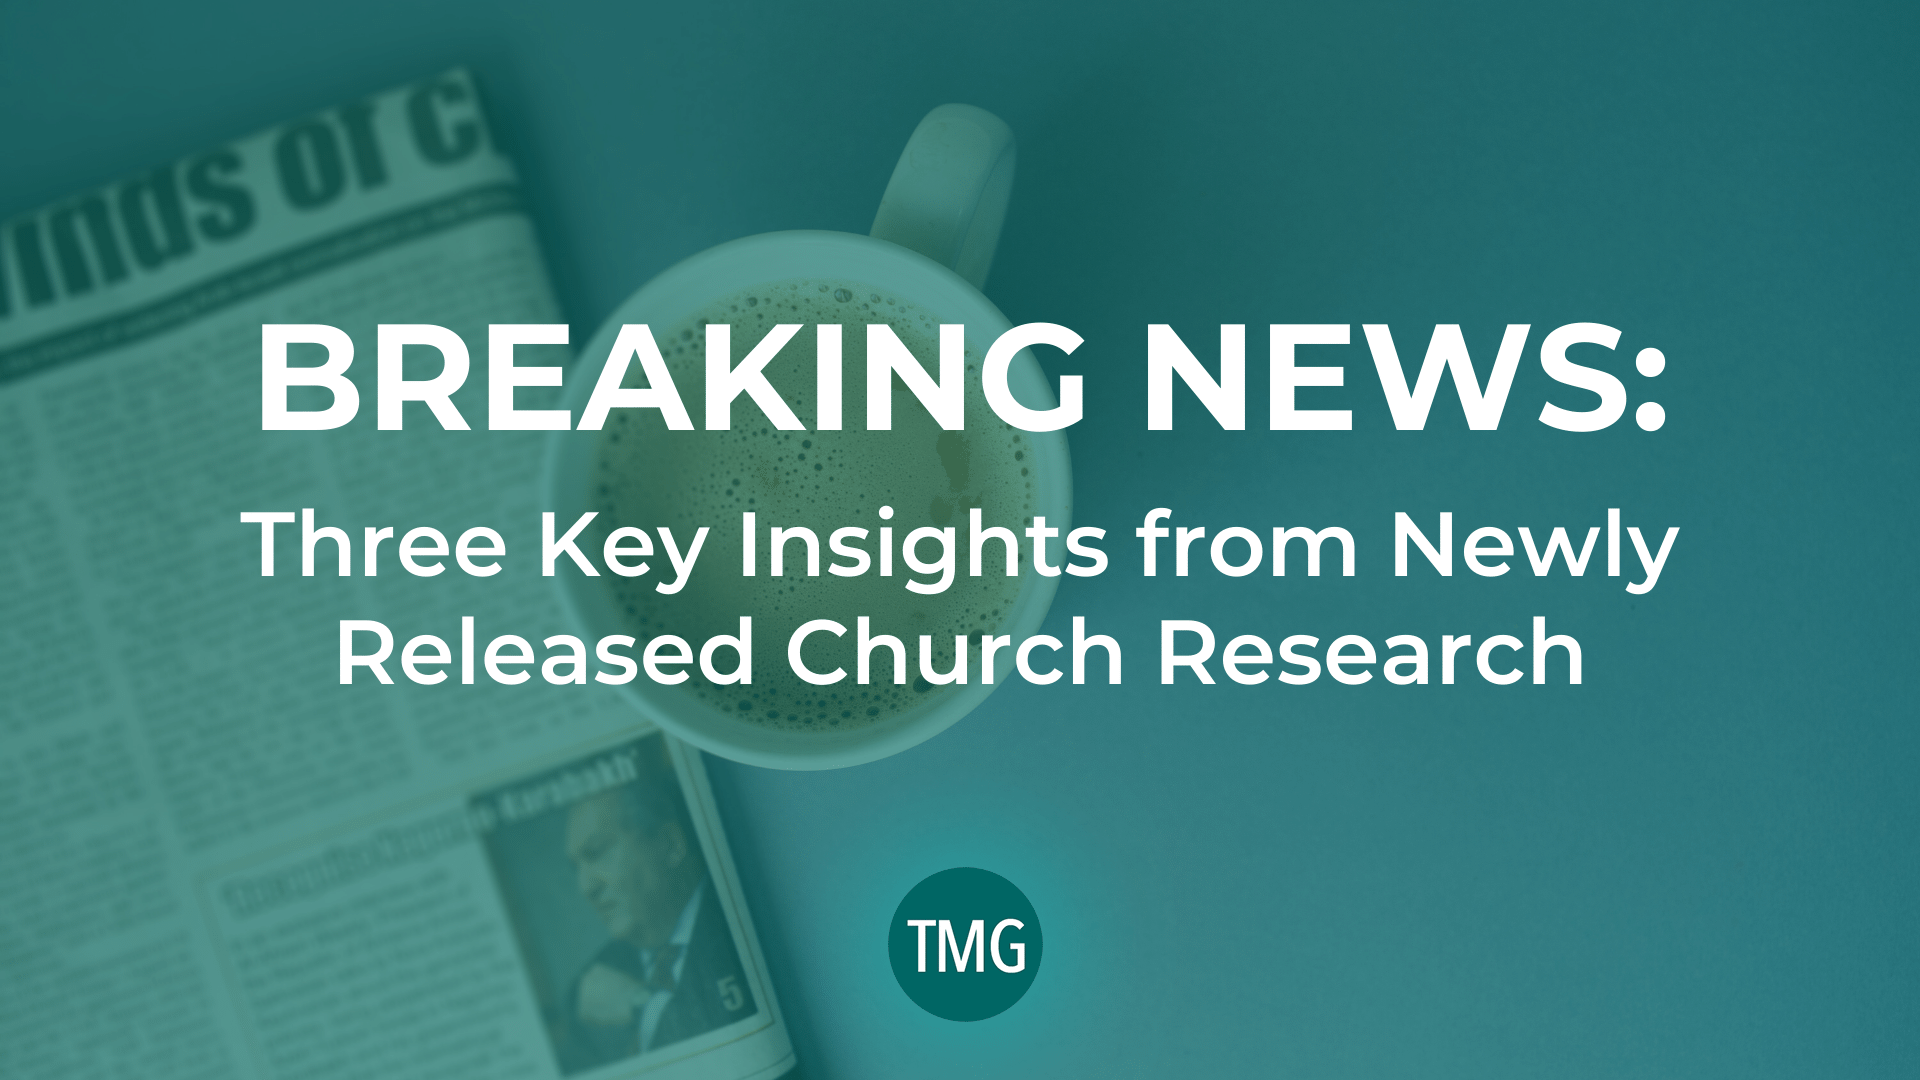 breaking-news-three-key-insights-from-newly-released-church-research_the-church-revitalization-podcast_the-malphurs-group